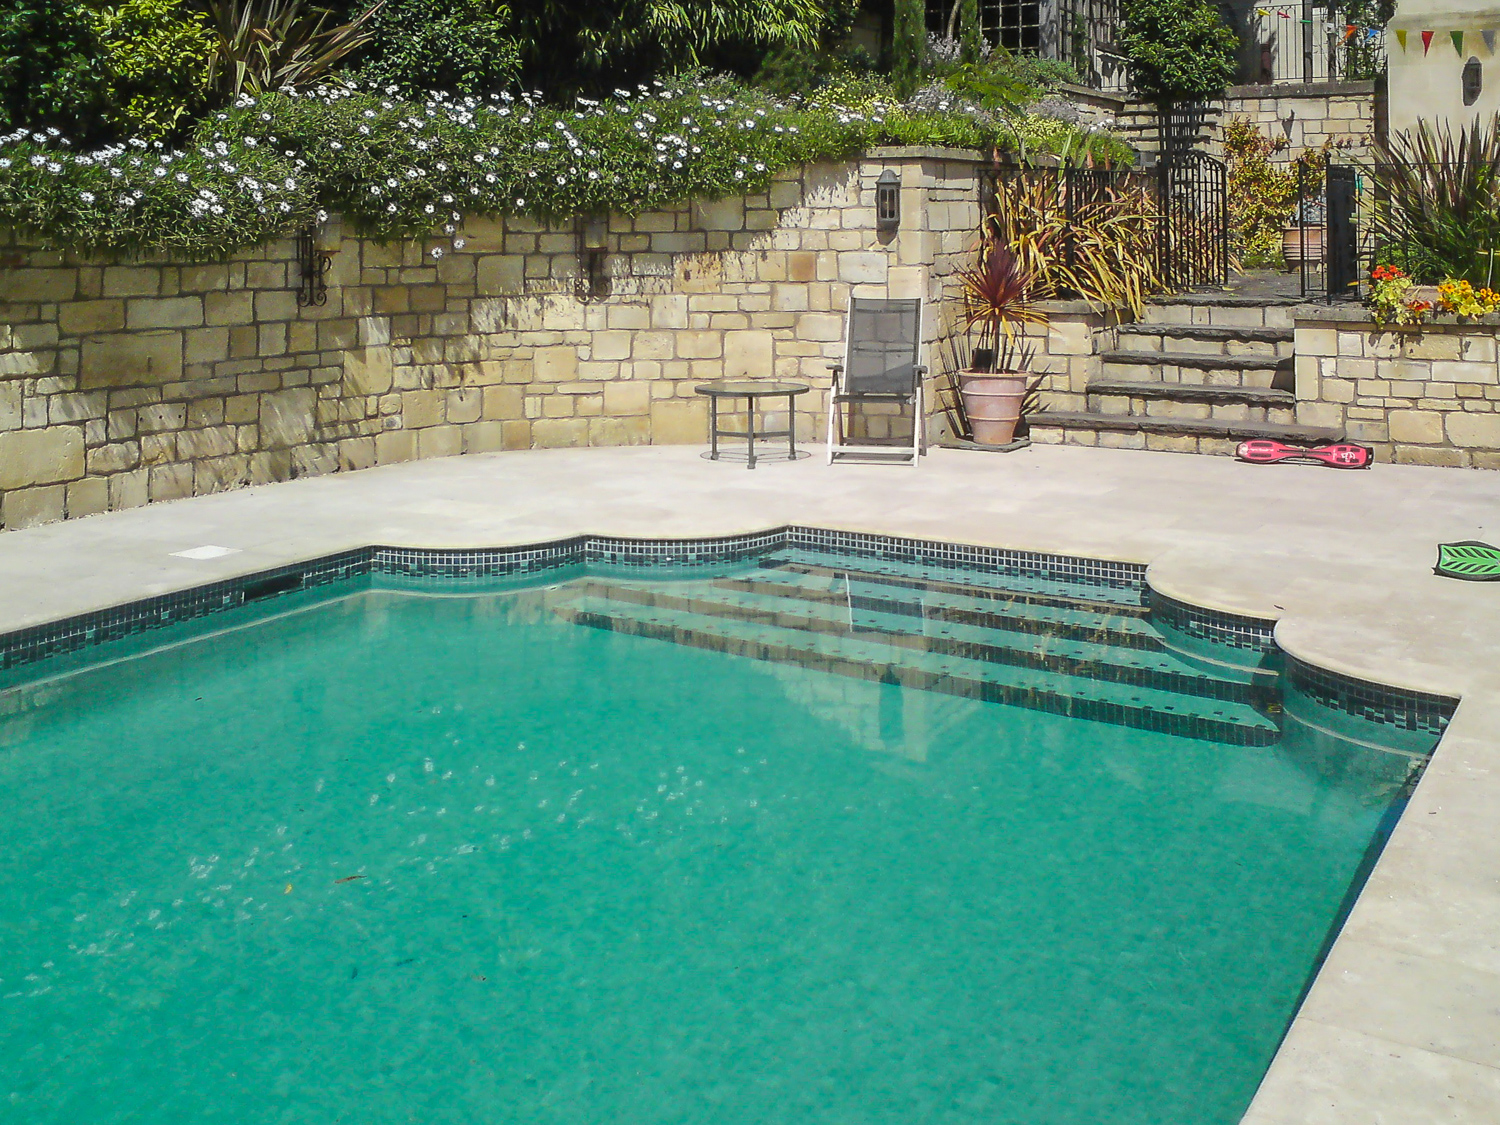 Swimming pools pool and spa service for Pool service